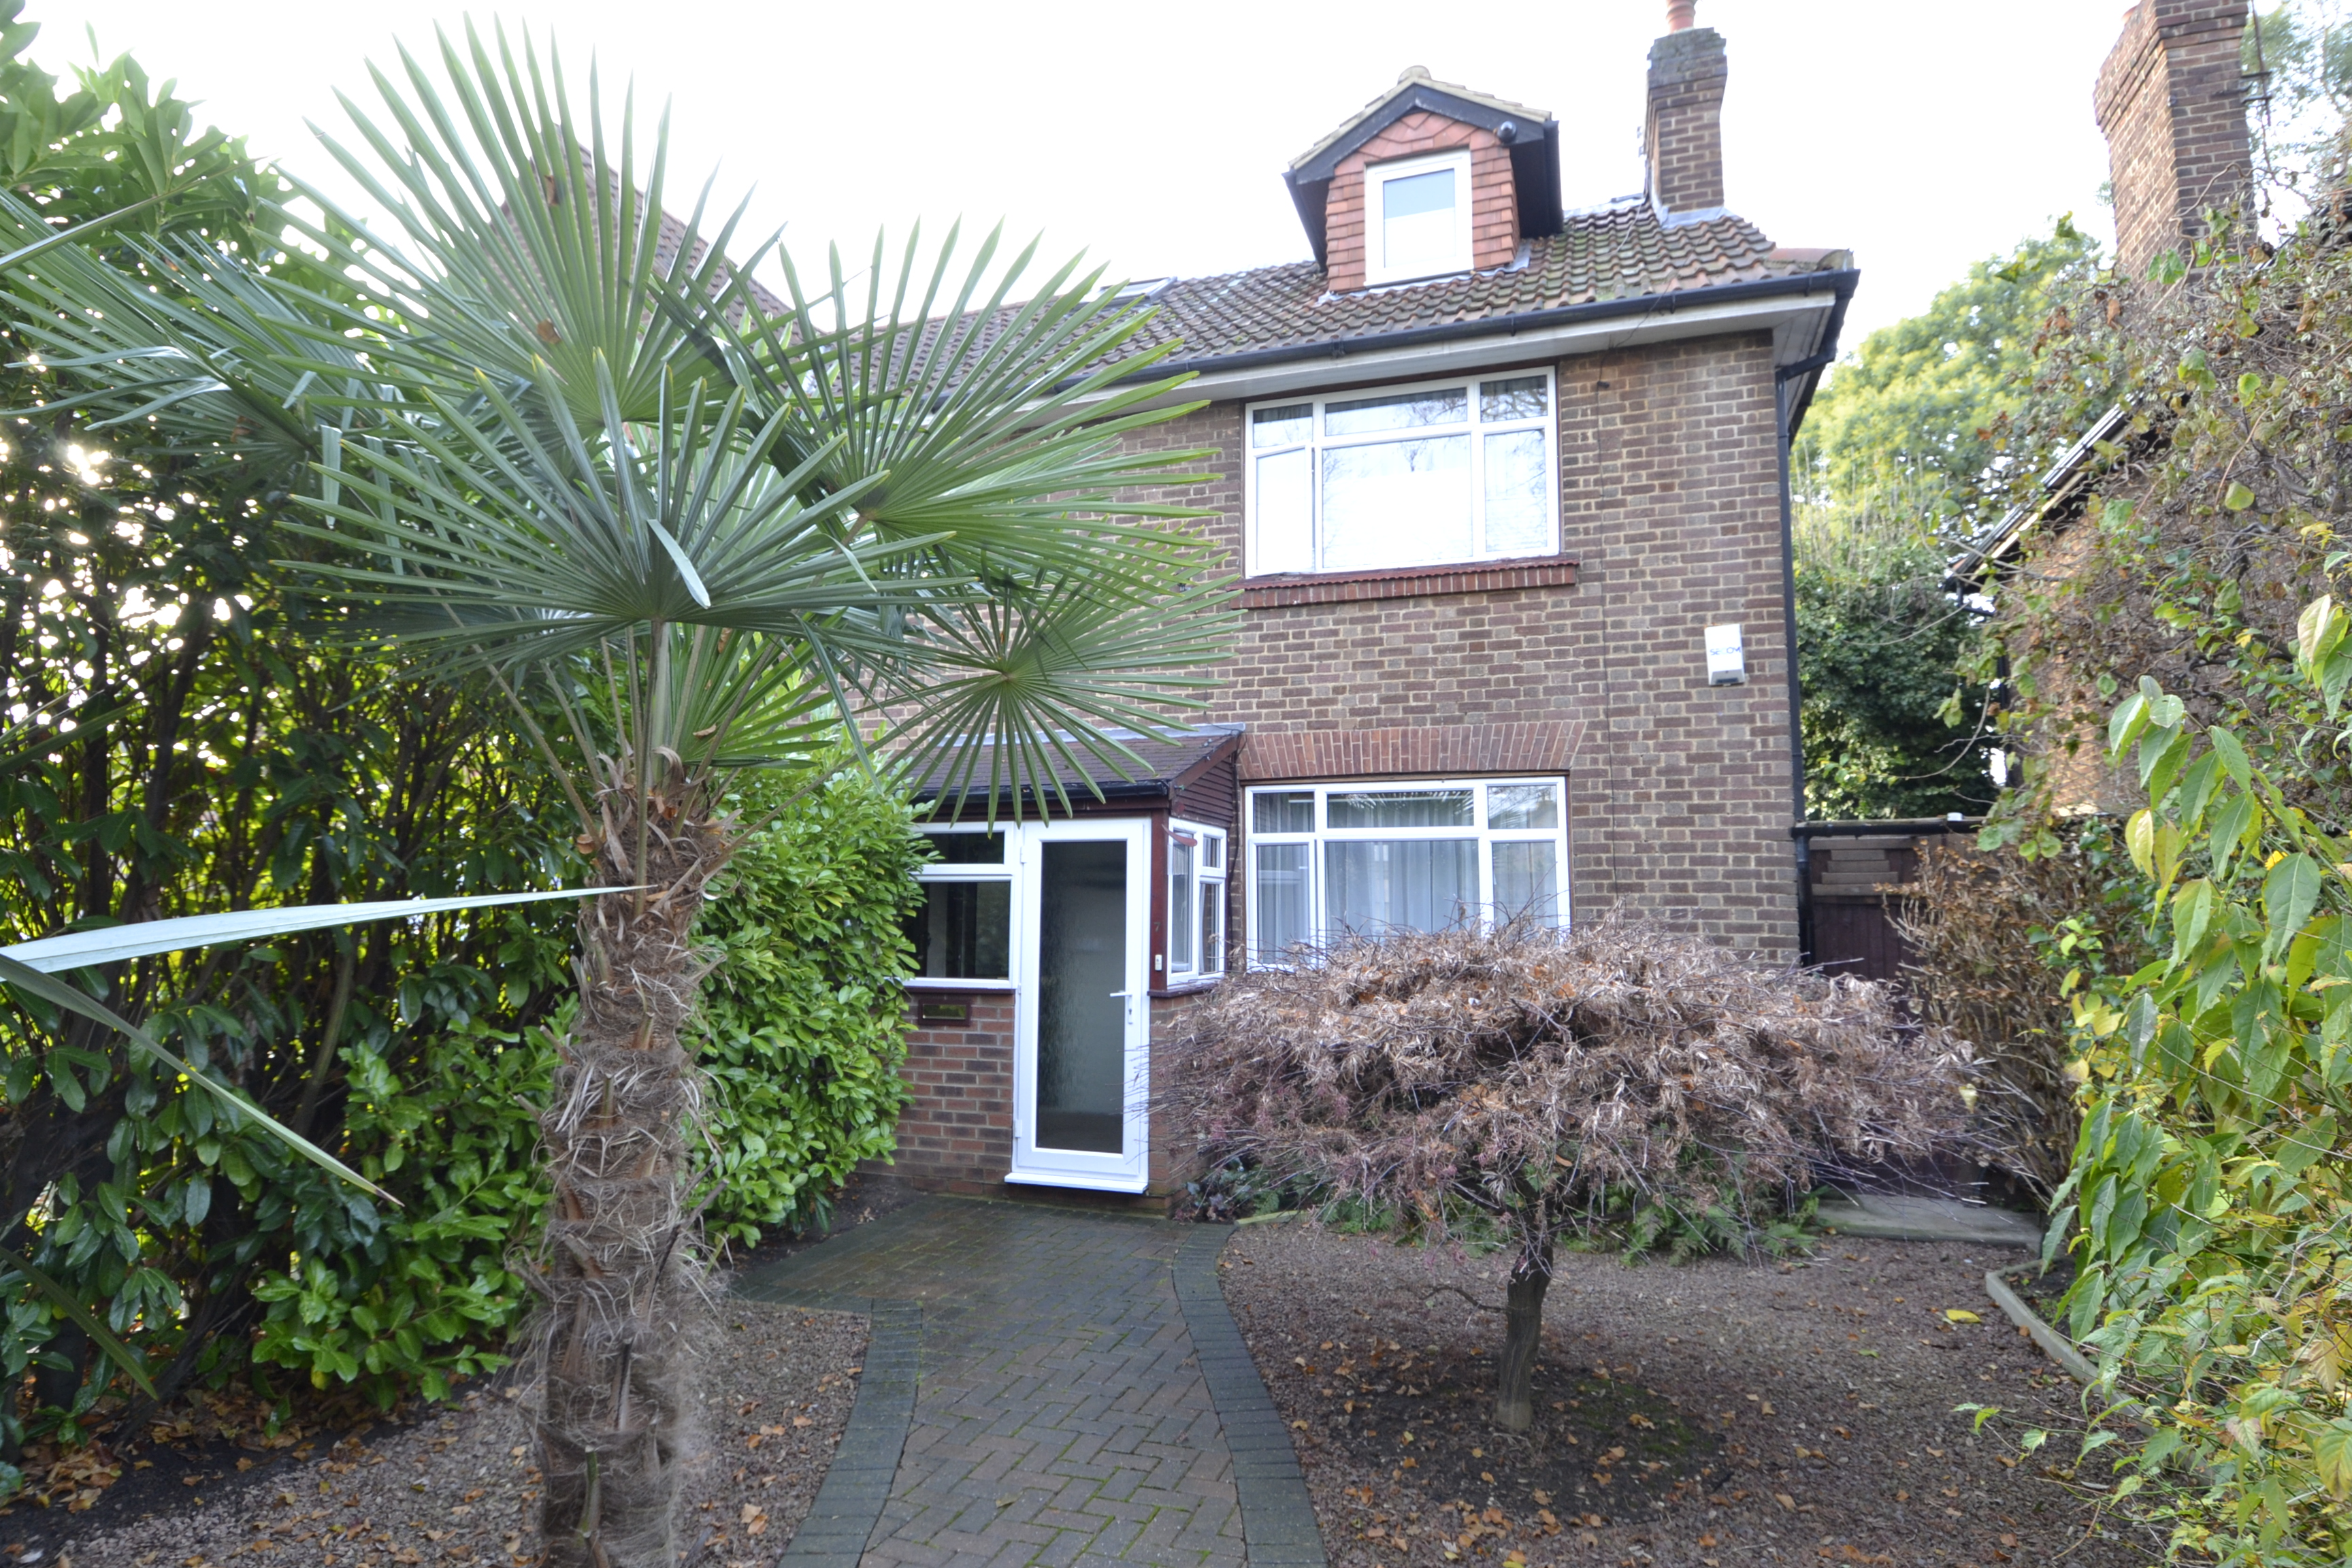 3 bedroom semi-detached house for sale in Back Lane, Ham, ichmond ...